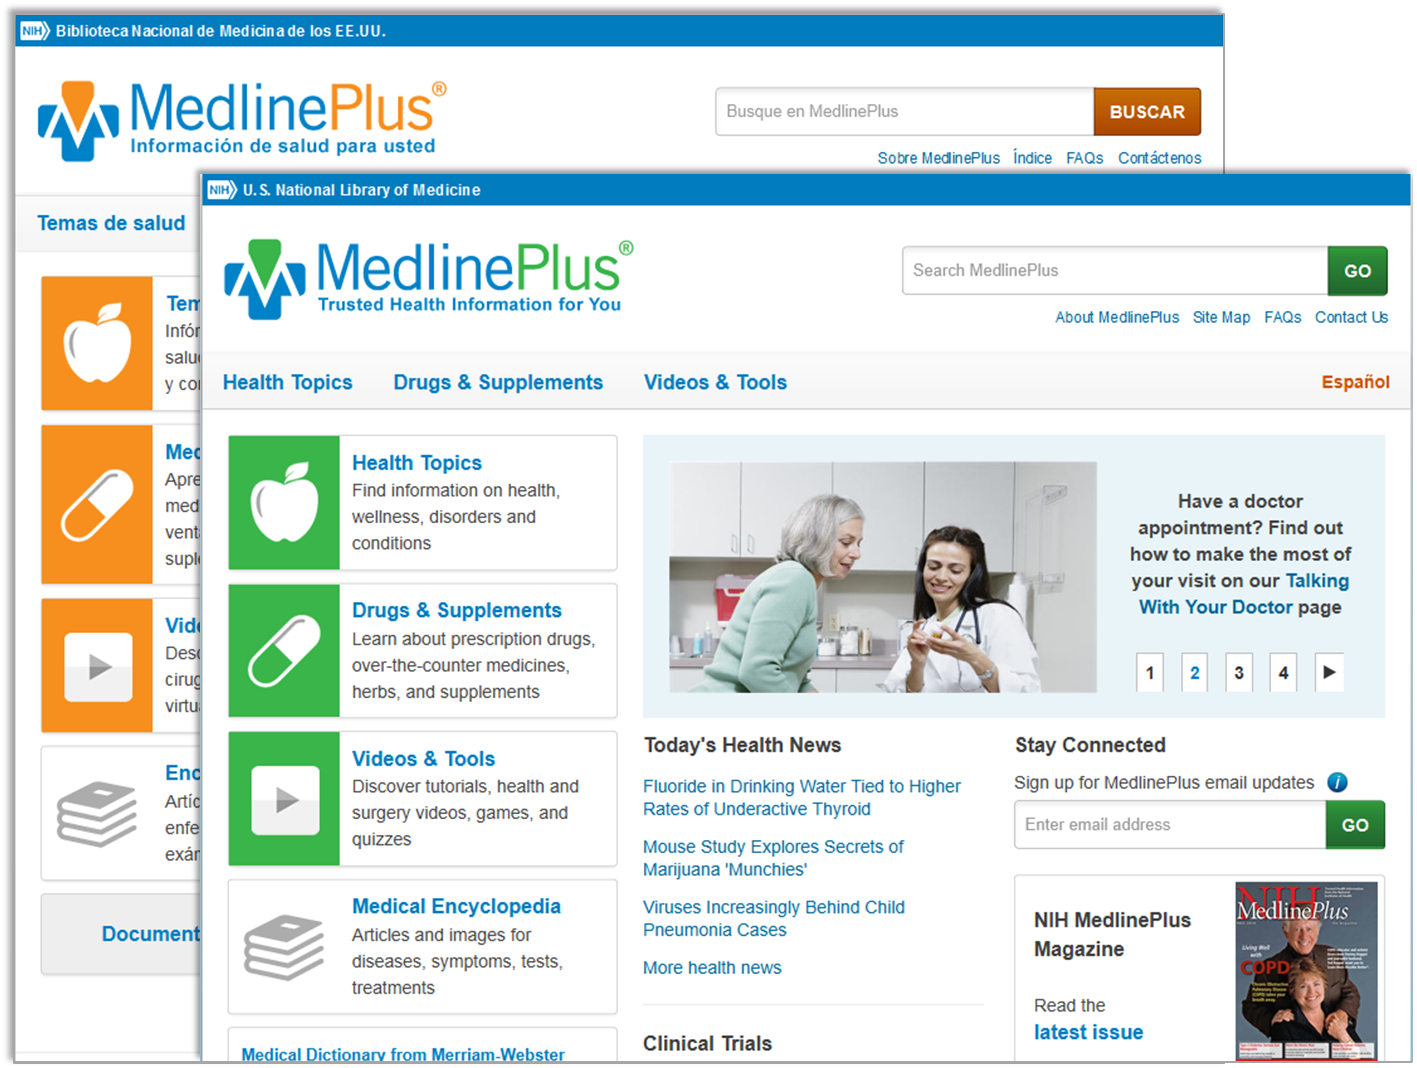 English and Spanish MedlinePlus home pages